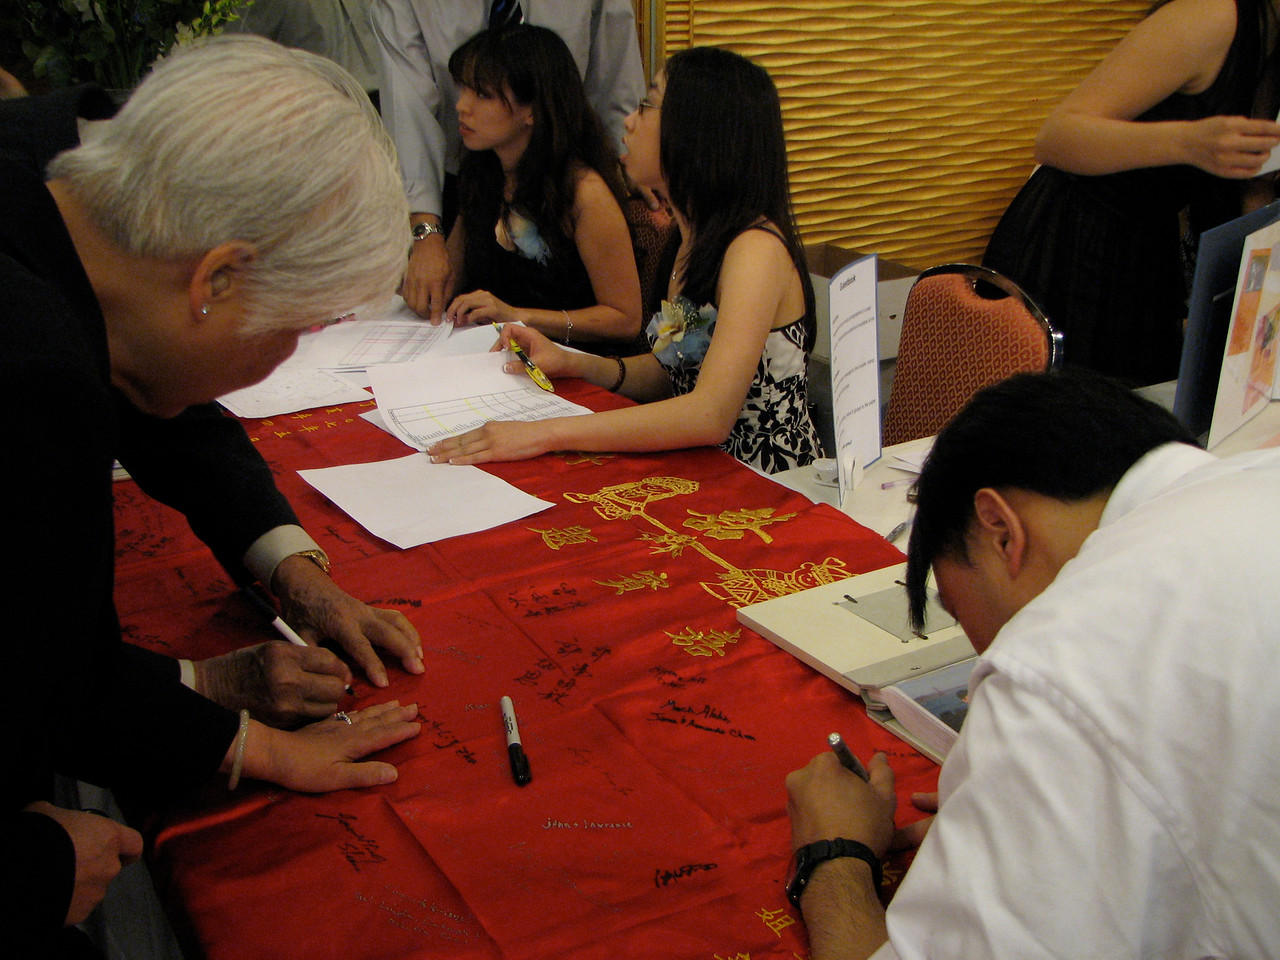 2007 05 19 Sat - Reception - Guests signing the silk cloth